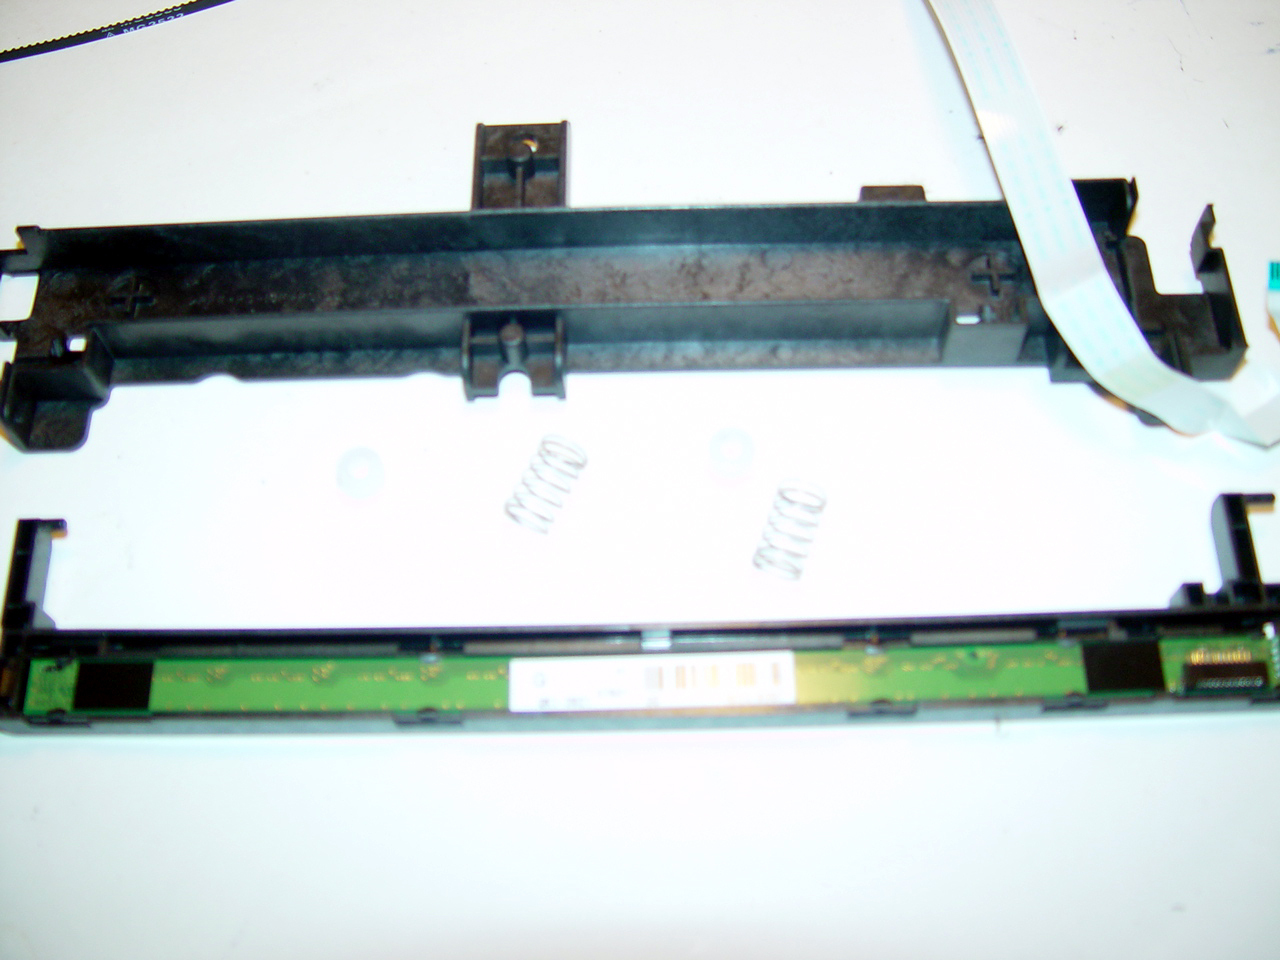 Don't Waste eWaste: UnMaking a Canon Printer/Scanner/Fax intoParts